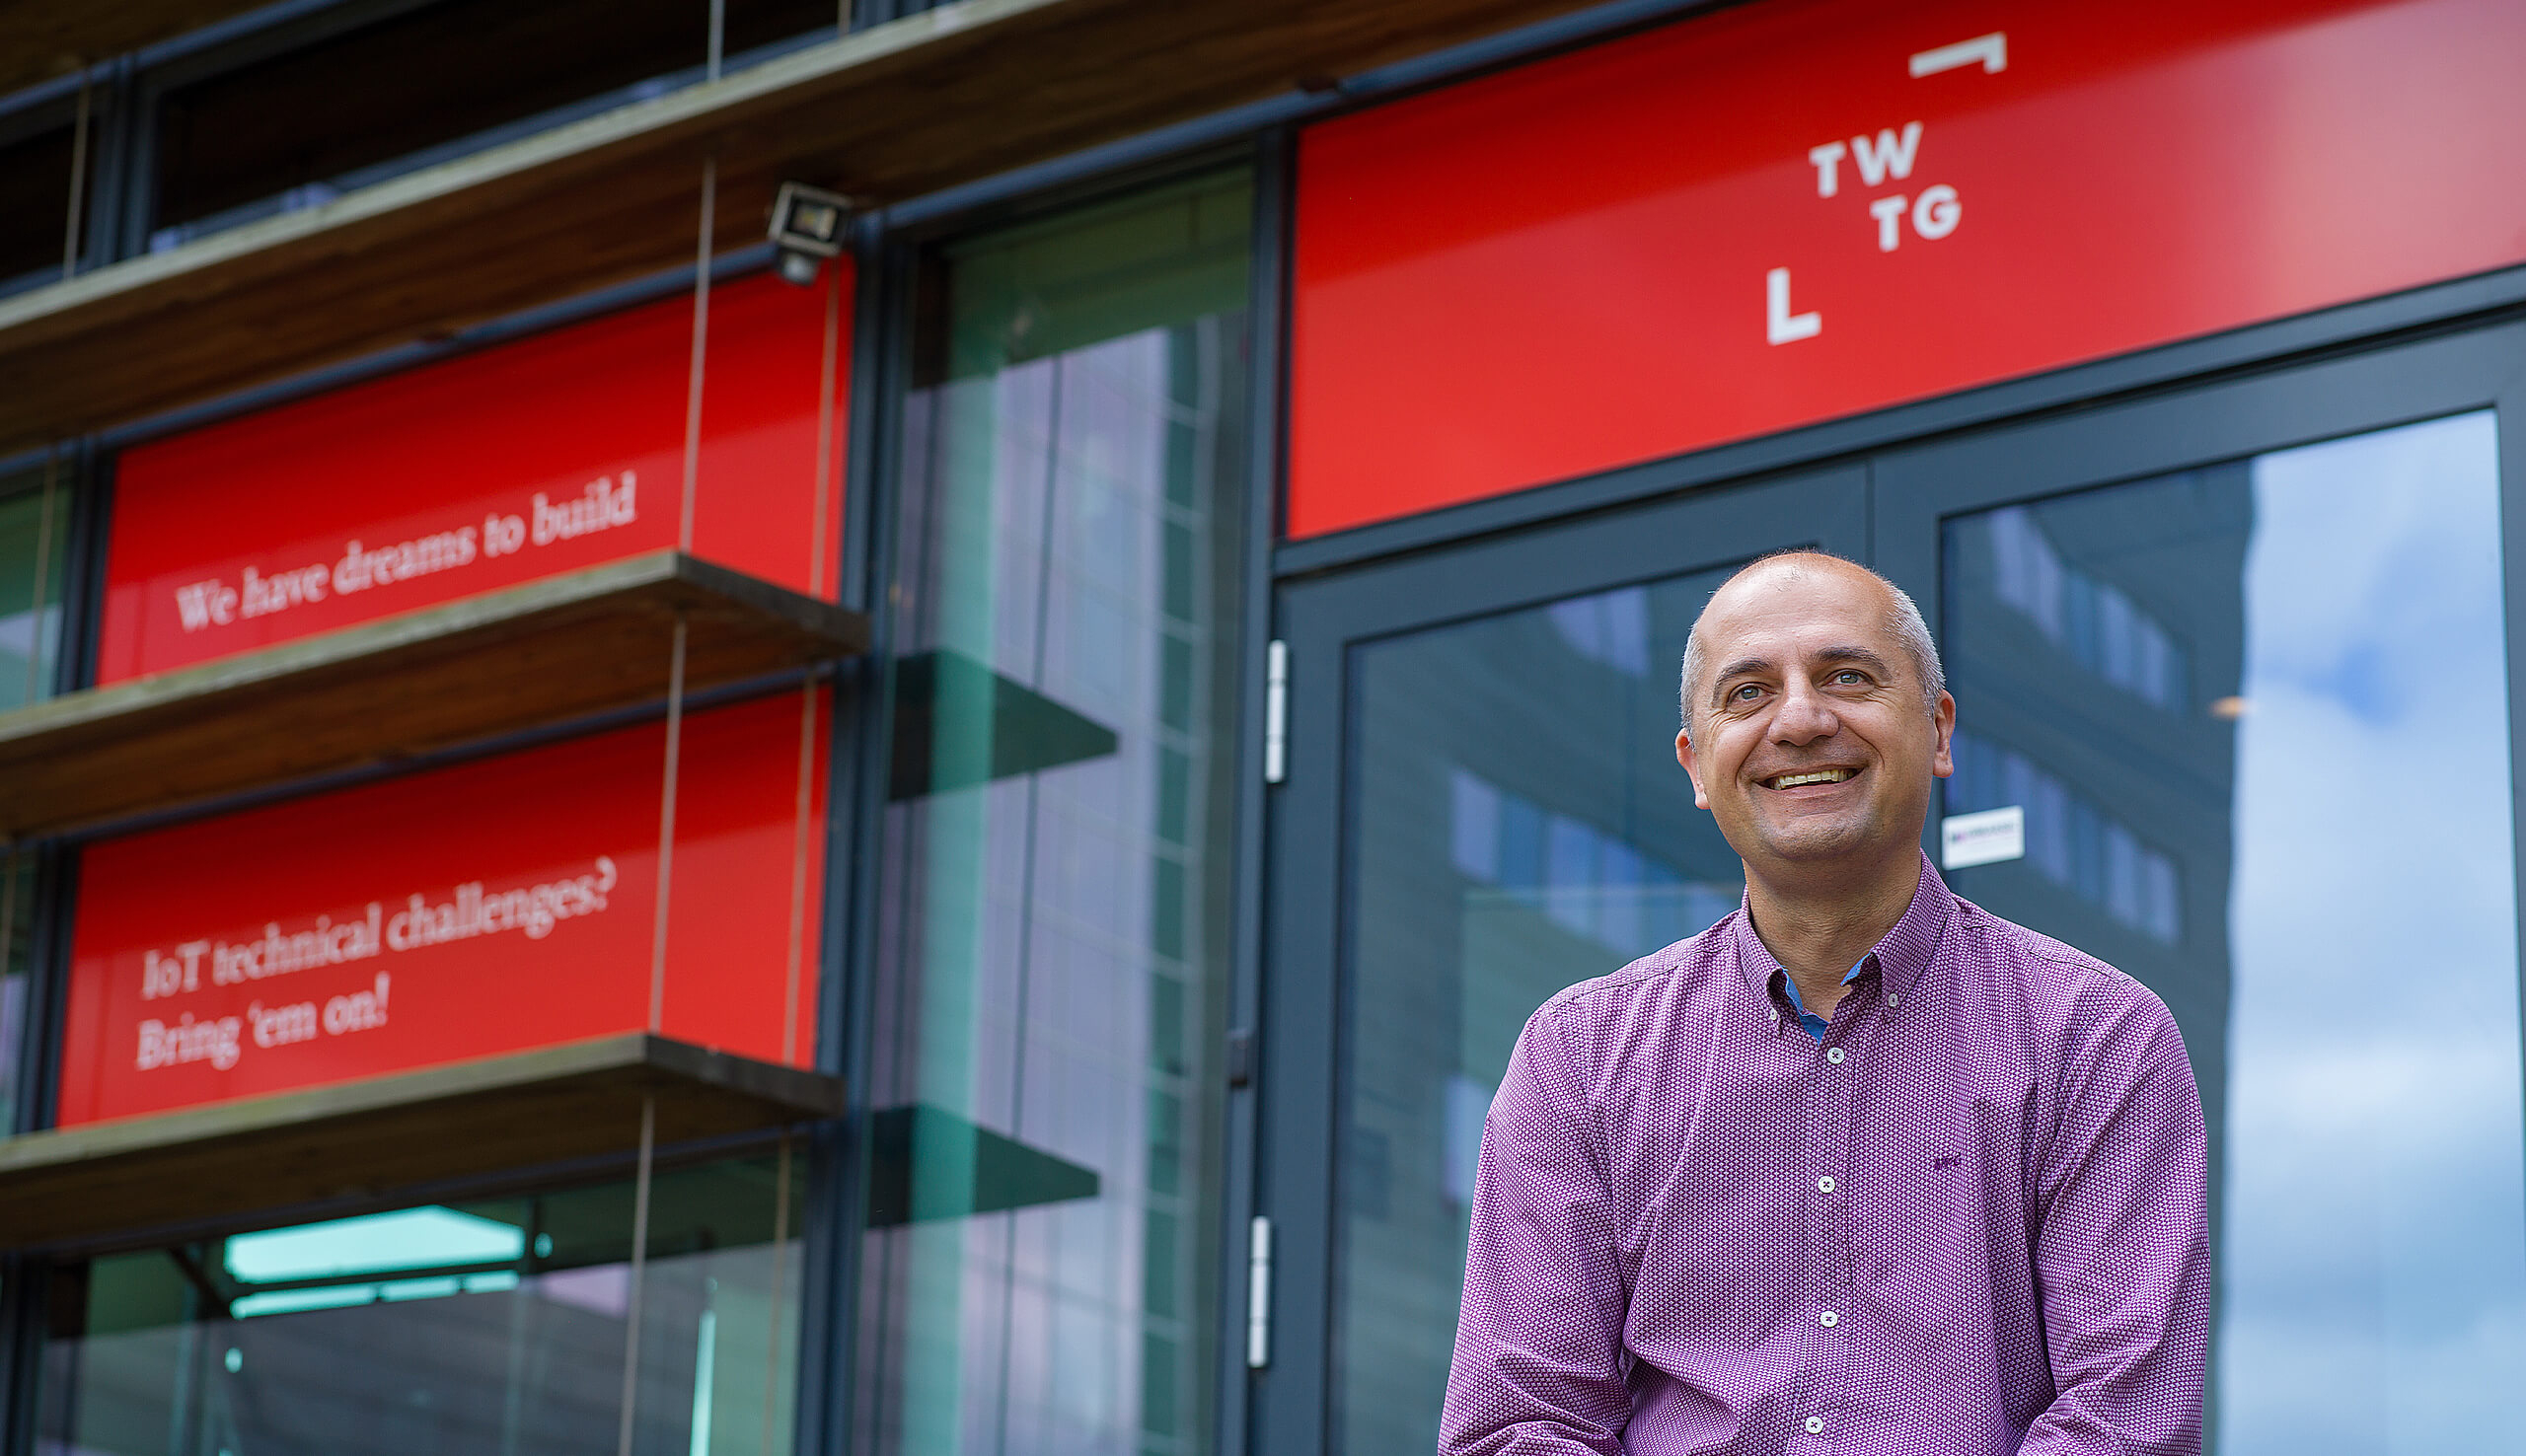 TWTG welcomes Goran Gavric as new CEO